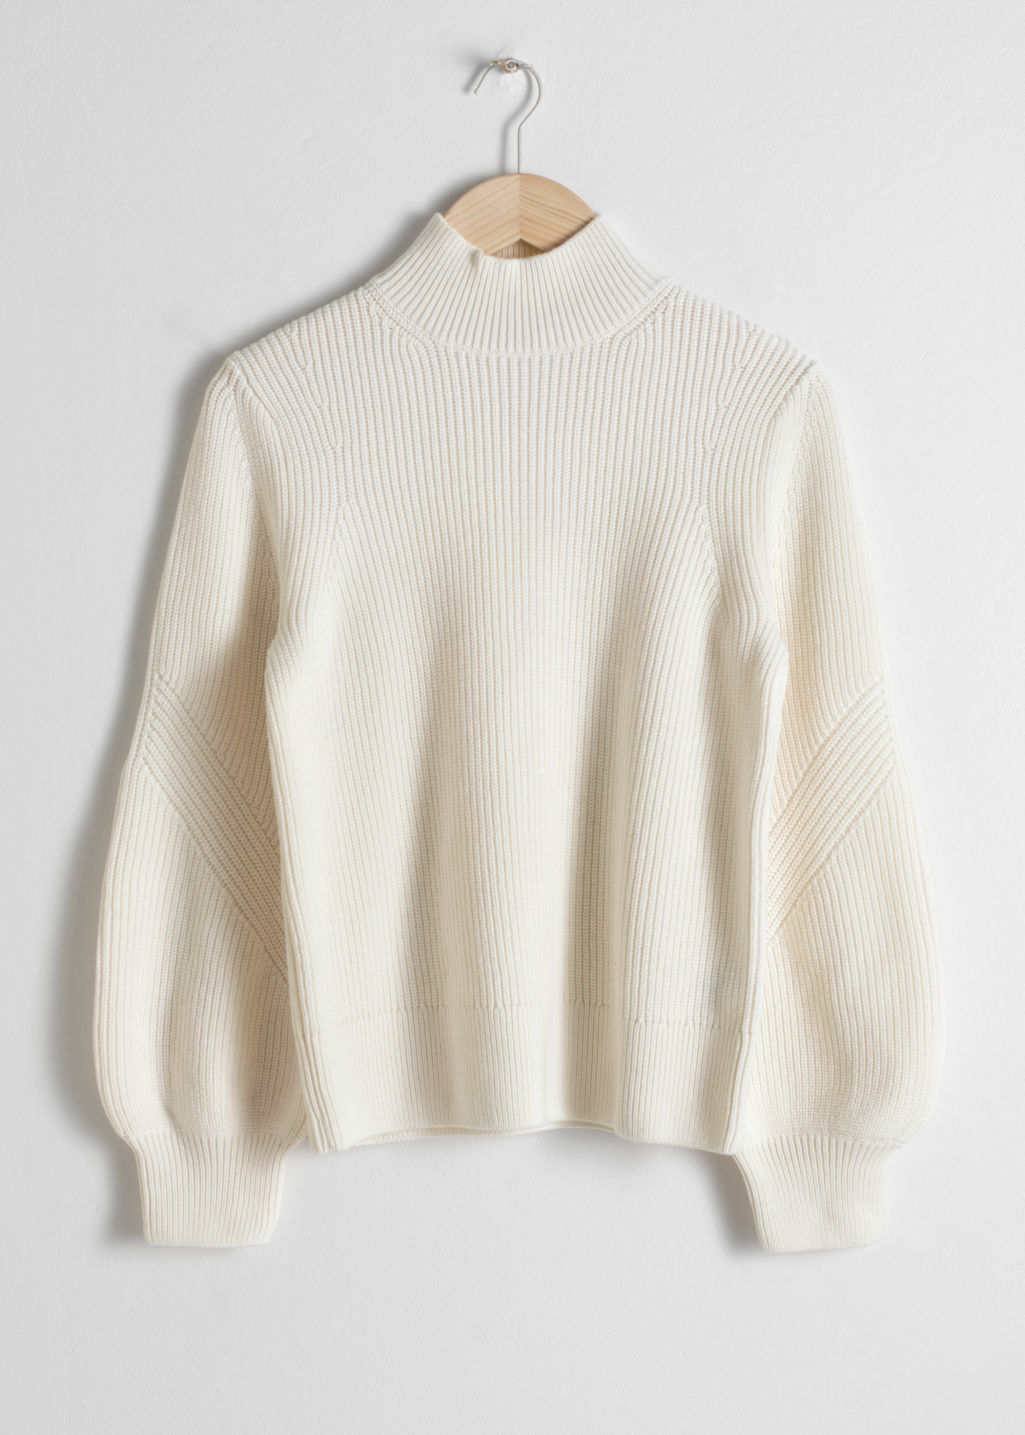 Balloon Sleeve Sweater Off Wihite Sweaters Other Stories